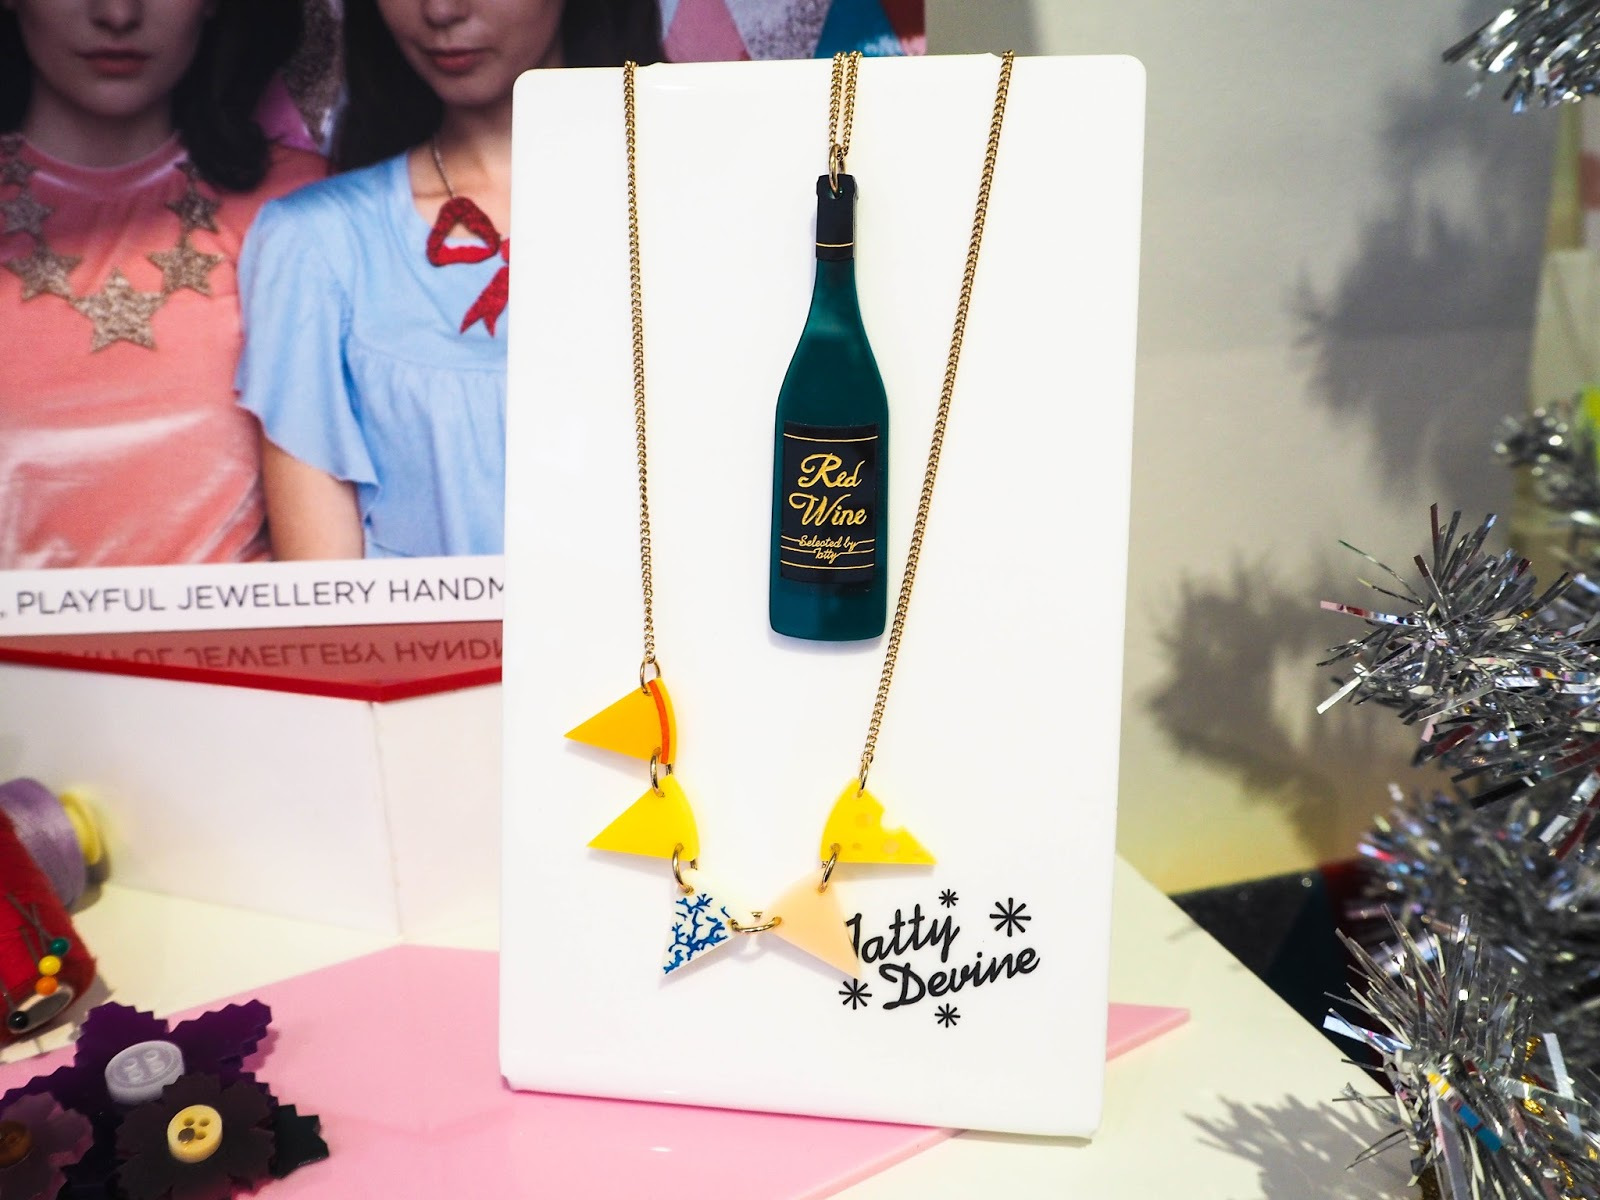 Tatty Devine red wine necklace and cheese necklace